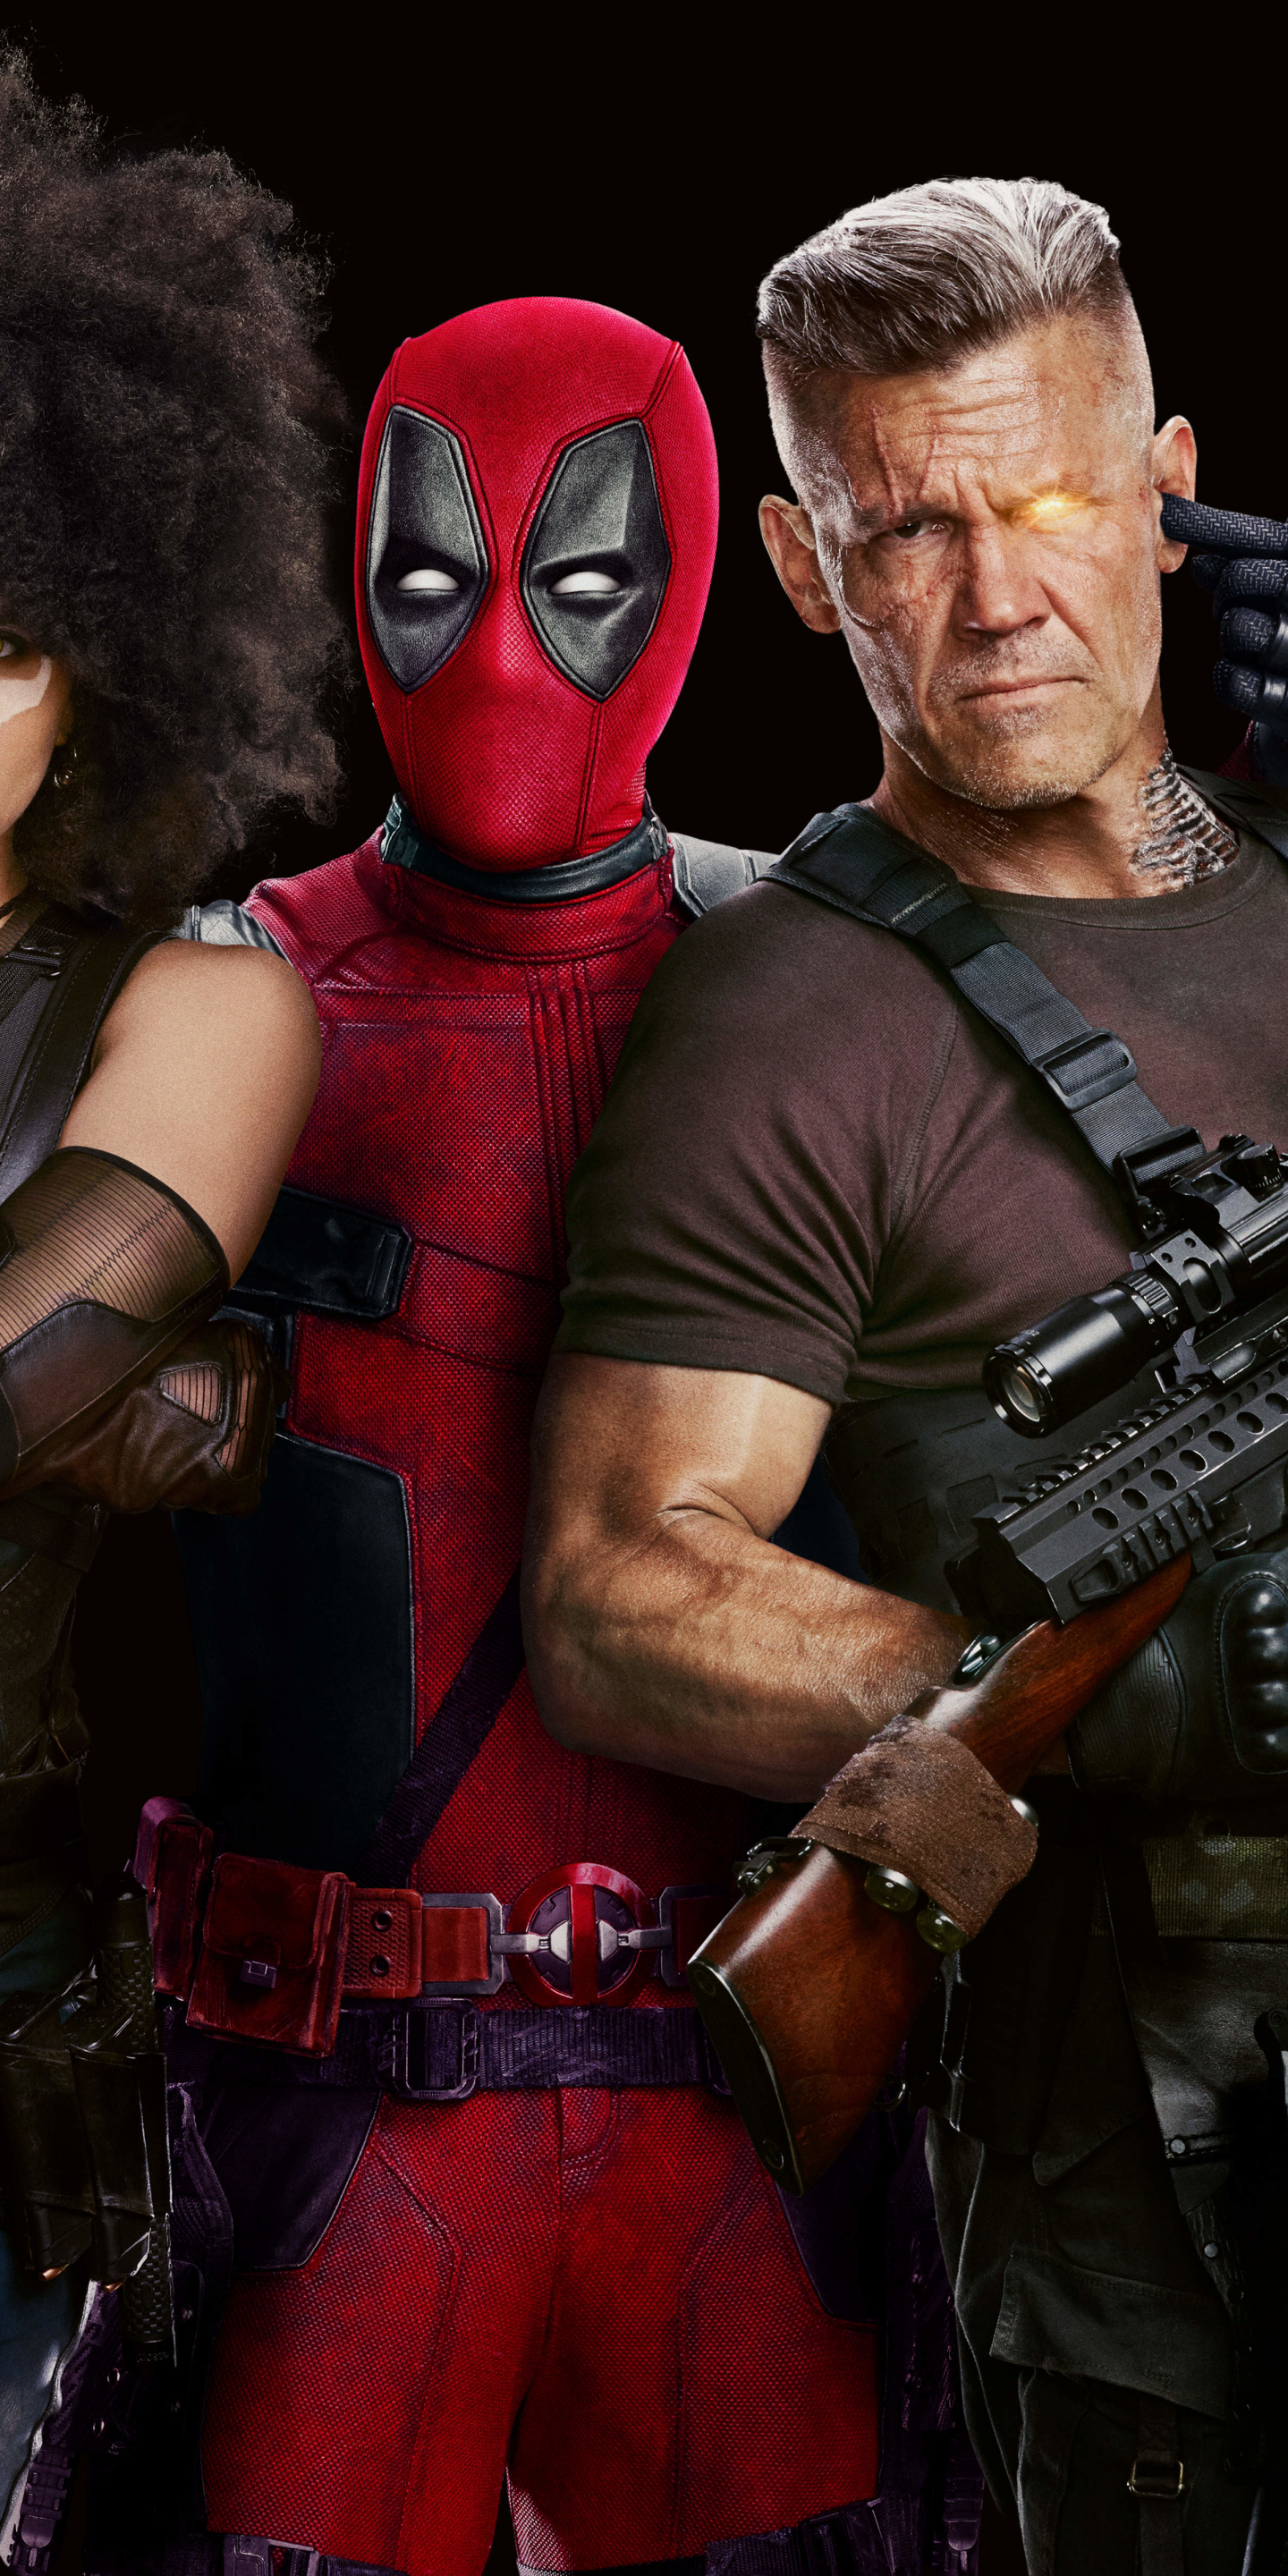 1440x2880 Deadpool 2 Movie Poster 1440x2880 Resolution Wallpaper Hd Movies 4k Wallpapers Images Photos And Background